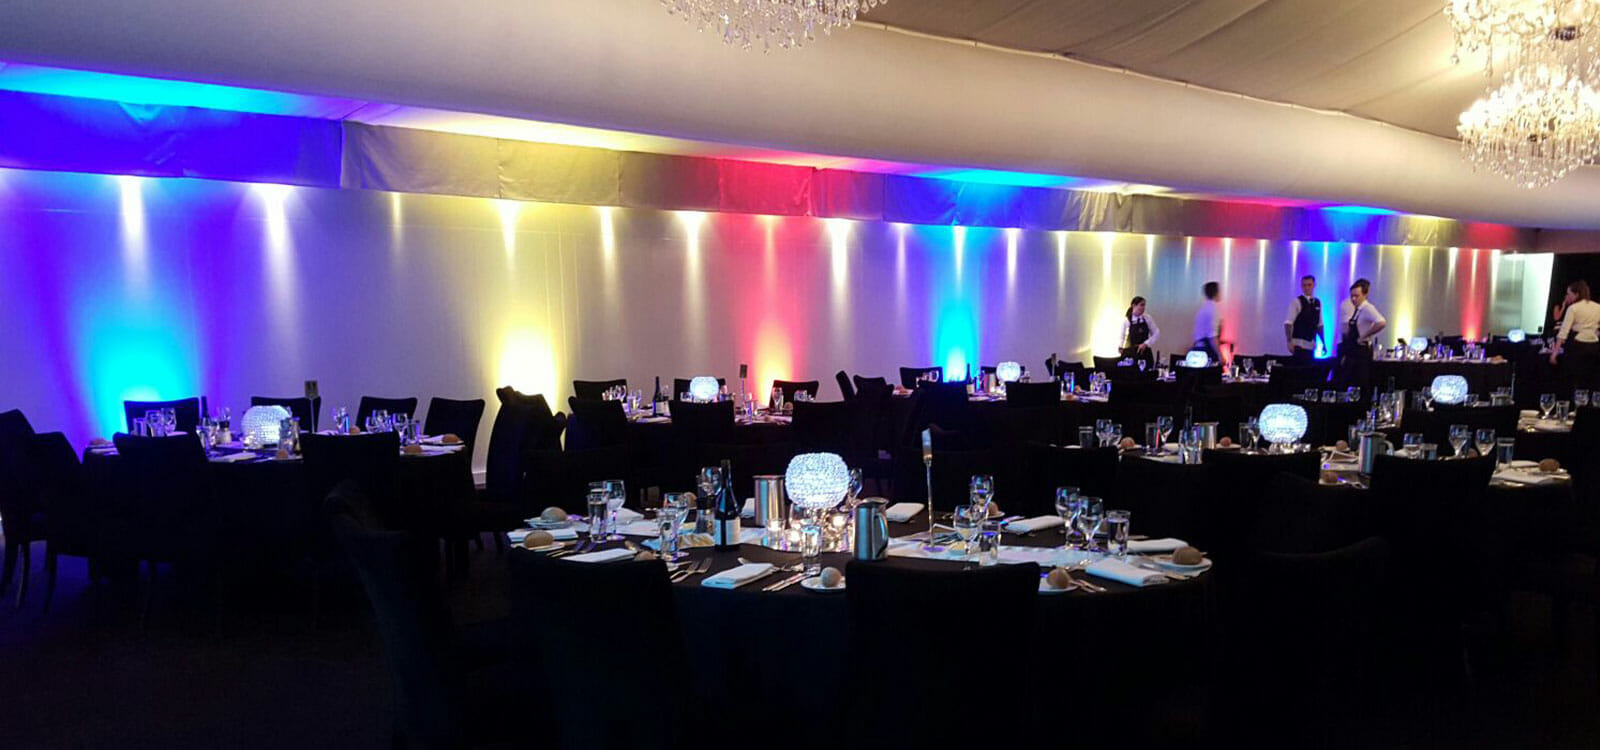 UPLIGHTING | Enhance Your Event Space